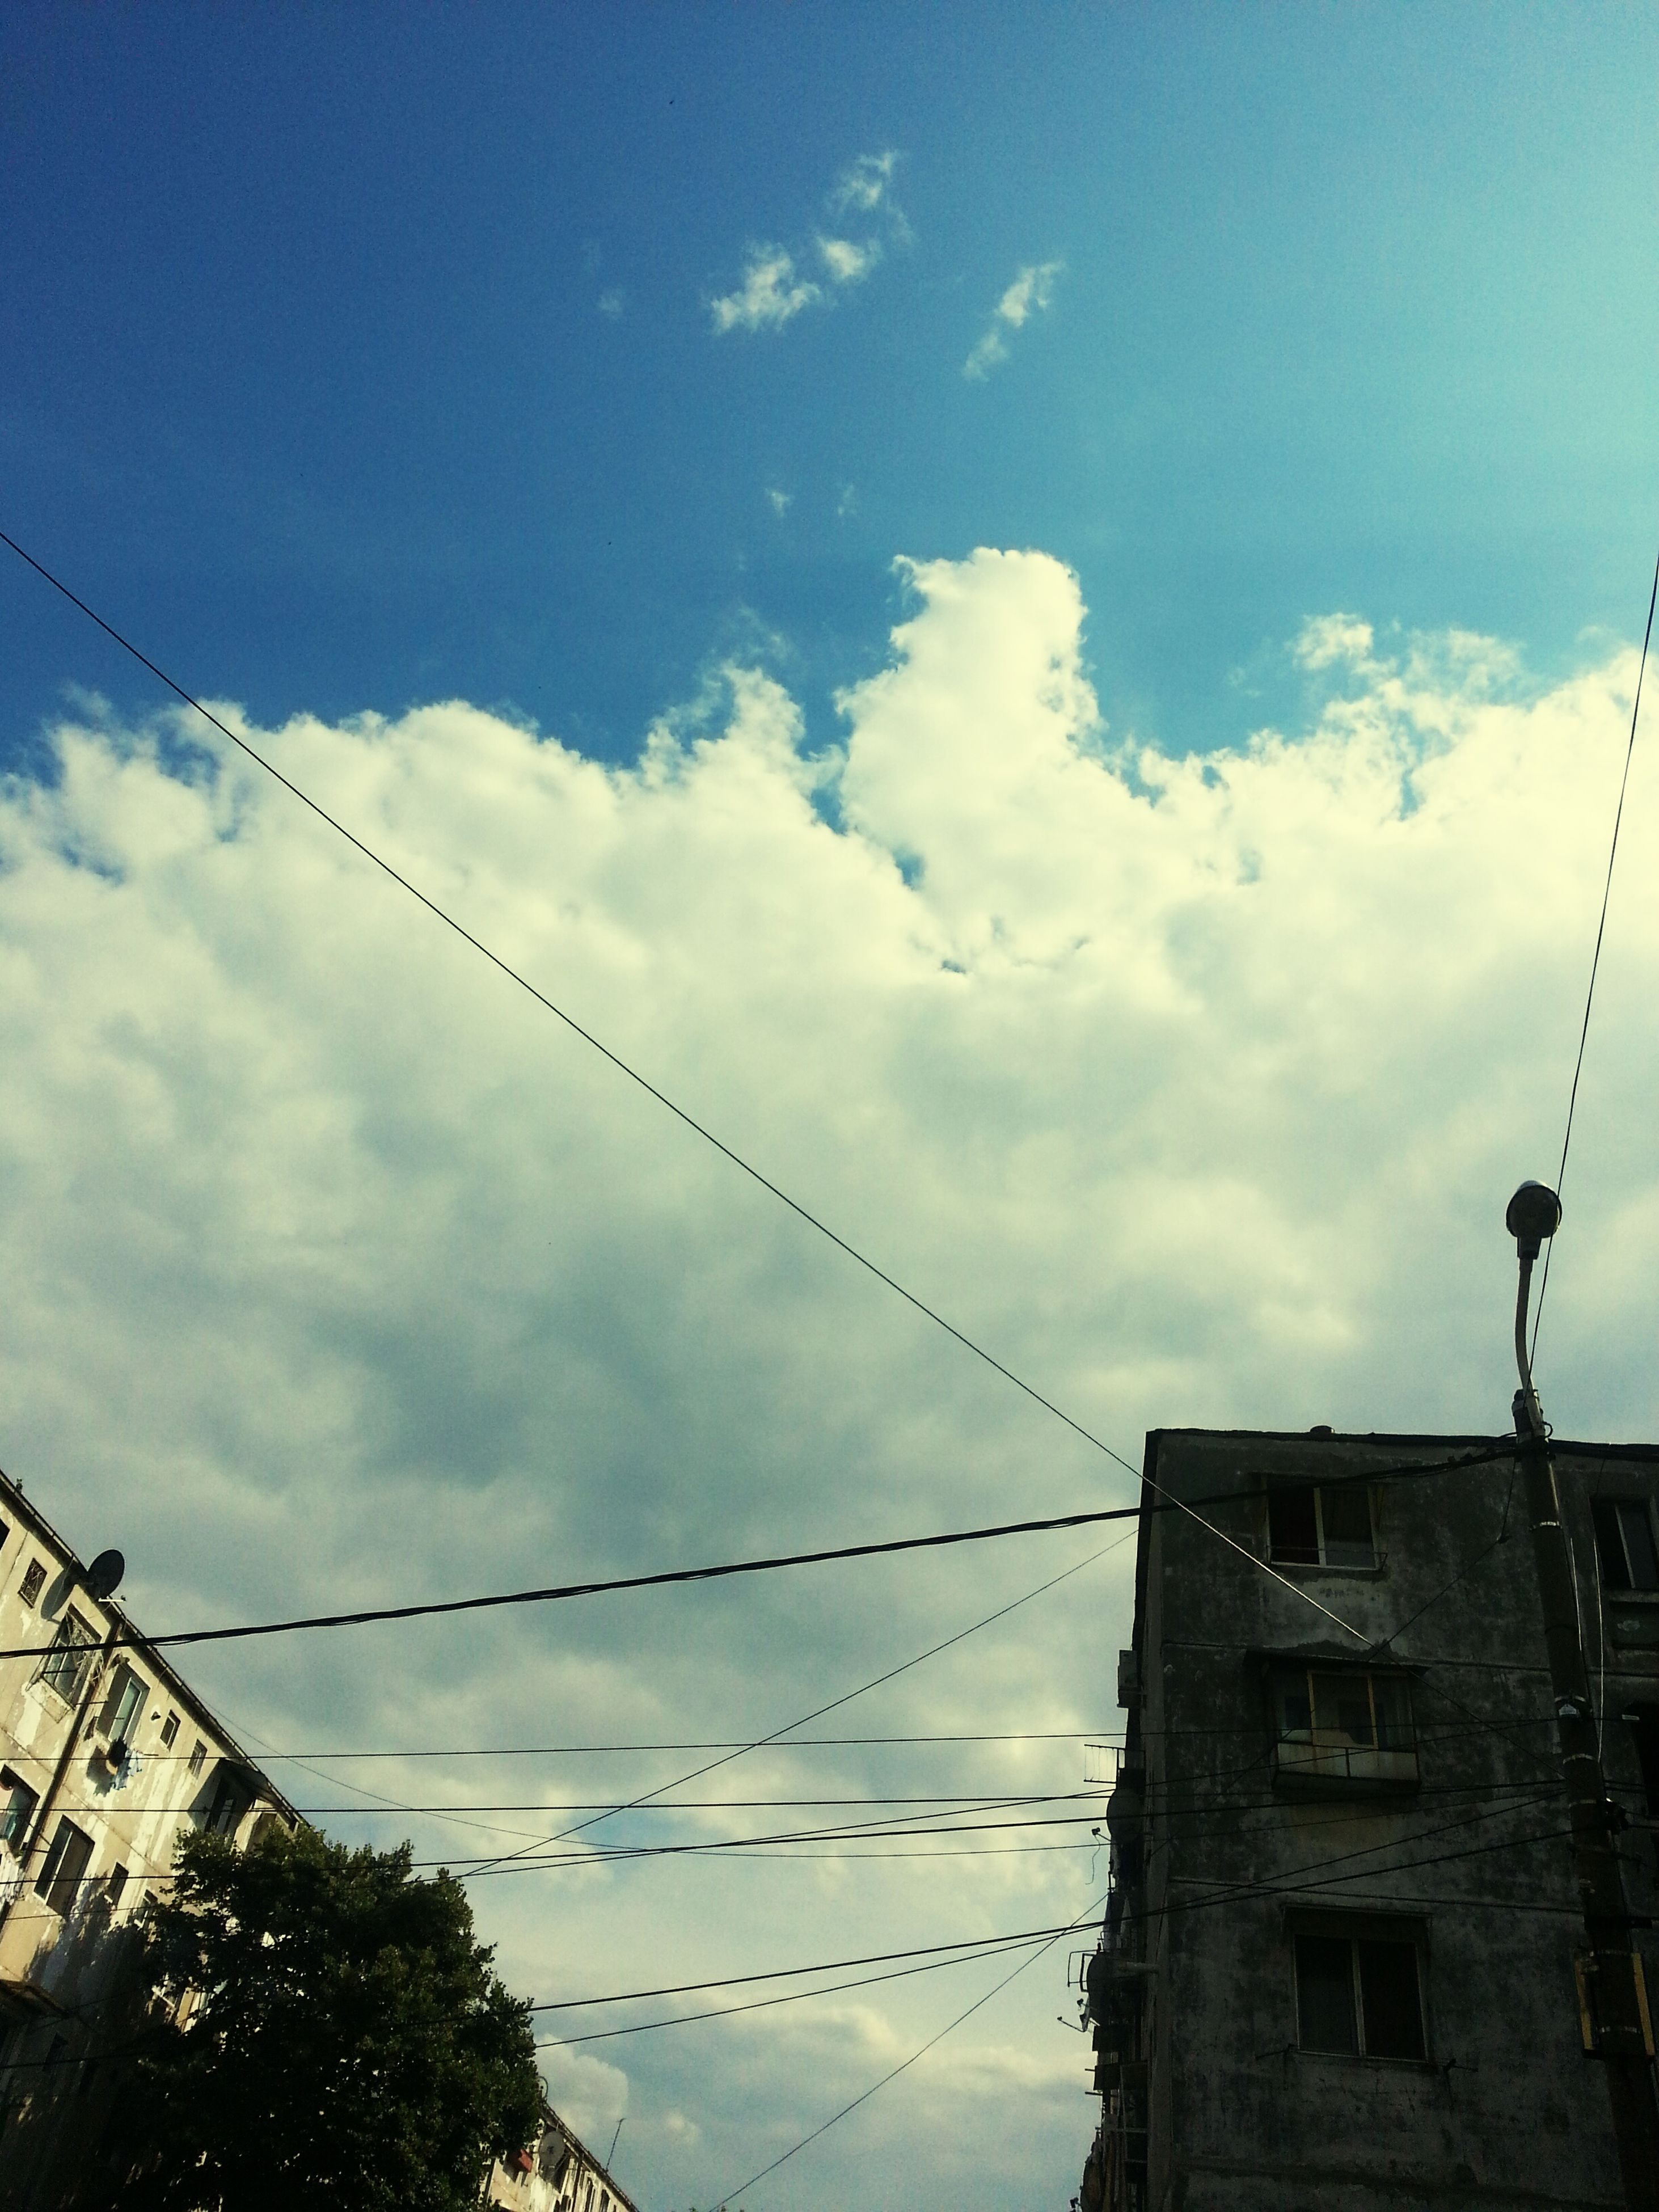 low angle view, power line, sky, bird, cable, architecture, built structure, connection, animal themes, building exterior, electricity, animals in the wild, cloud - sky, electricity pylon, perching, wildlife, power supply, silhouette, cloud